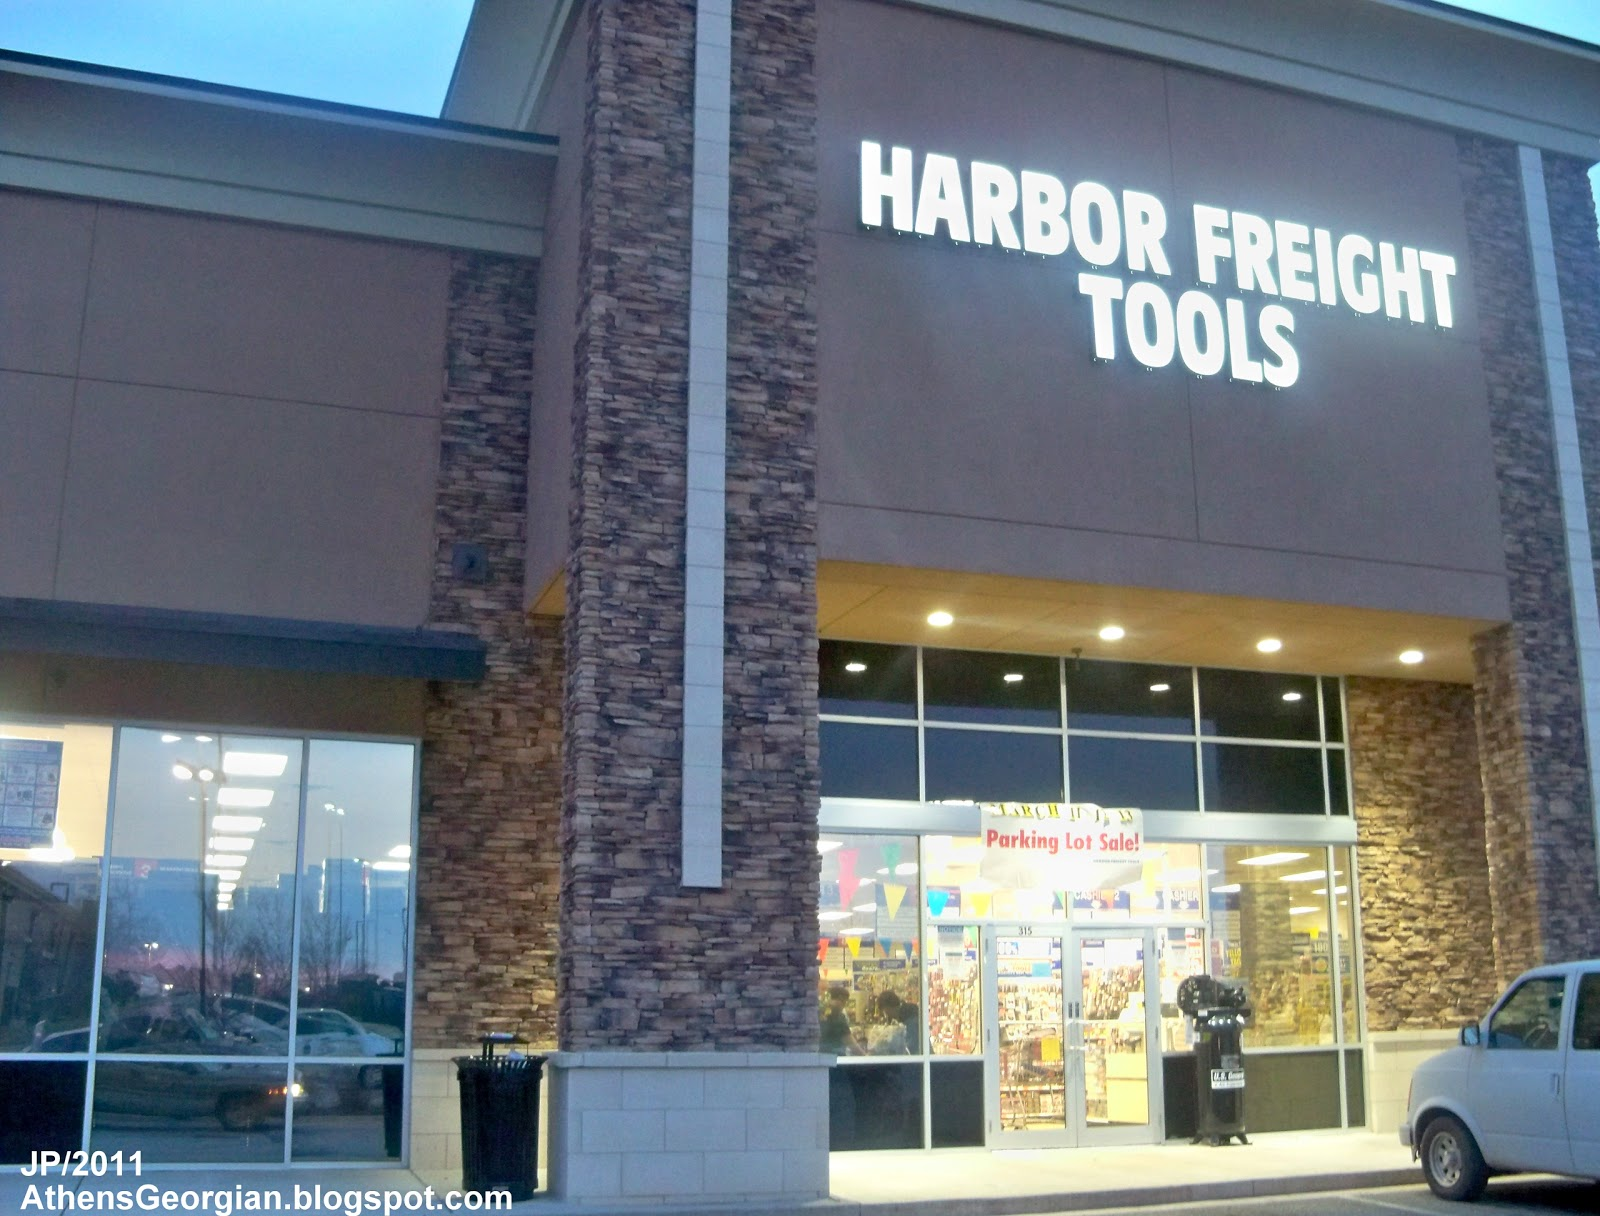 "#repost ""Gotta give a huge shout out to @harborfreight today. As a DIYer on a budget this is a great place to go to save some money on quality tools that will last."